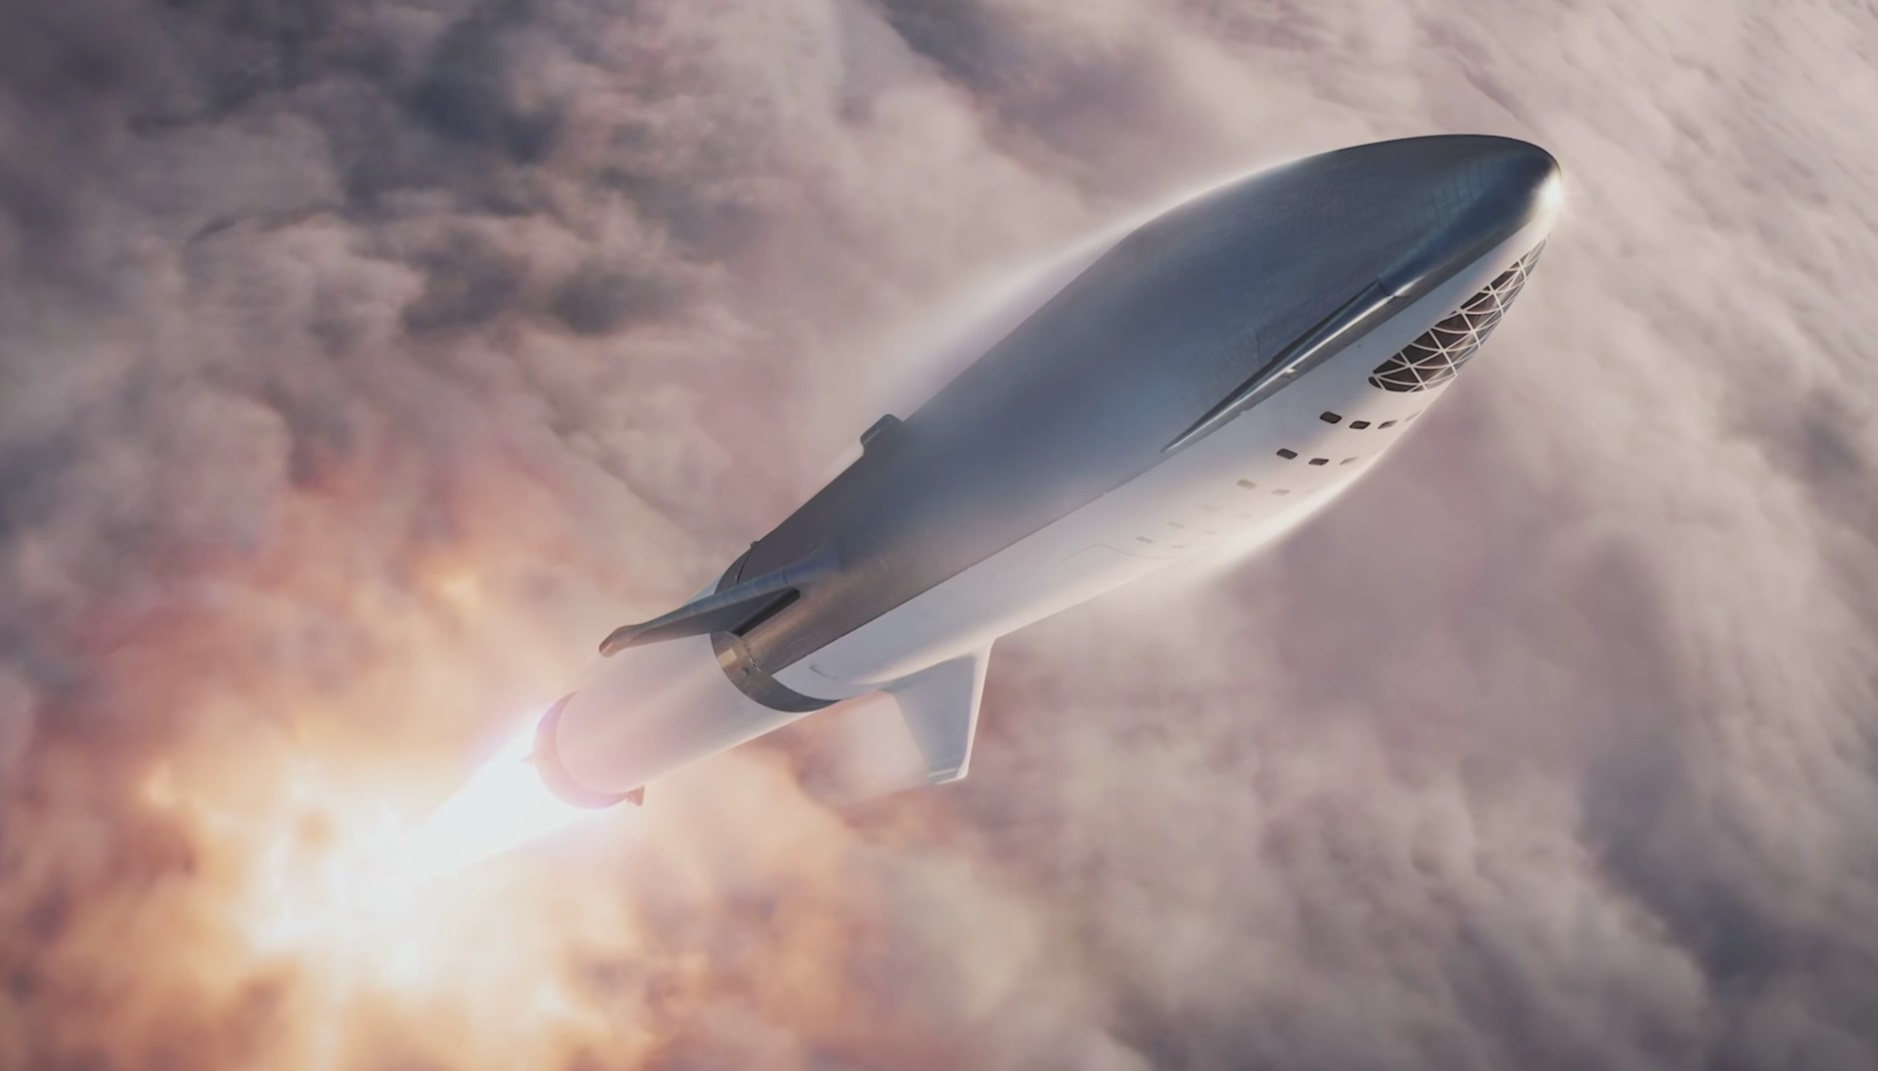 18 new details about Elon Musk's redesigned, moon-bound 'Big F*ing Rocket' spacex4